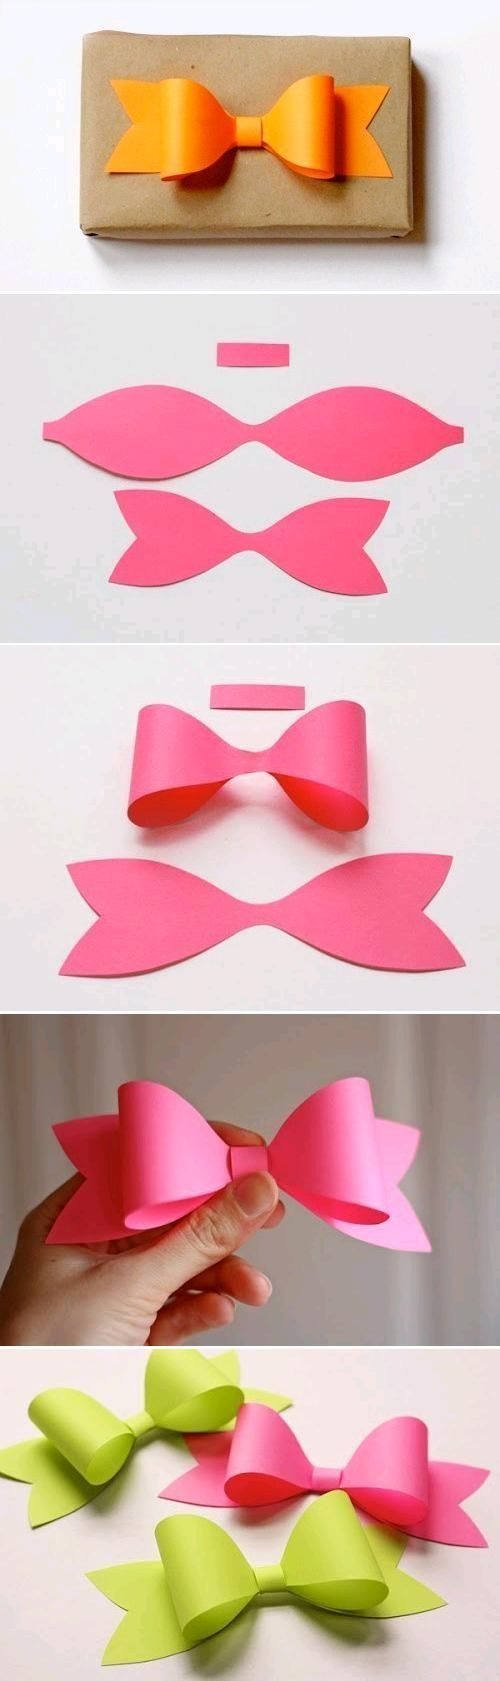 photo tutorial how to make a paper bow great idea for packages, hair ornament or…